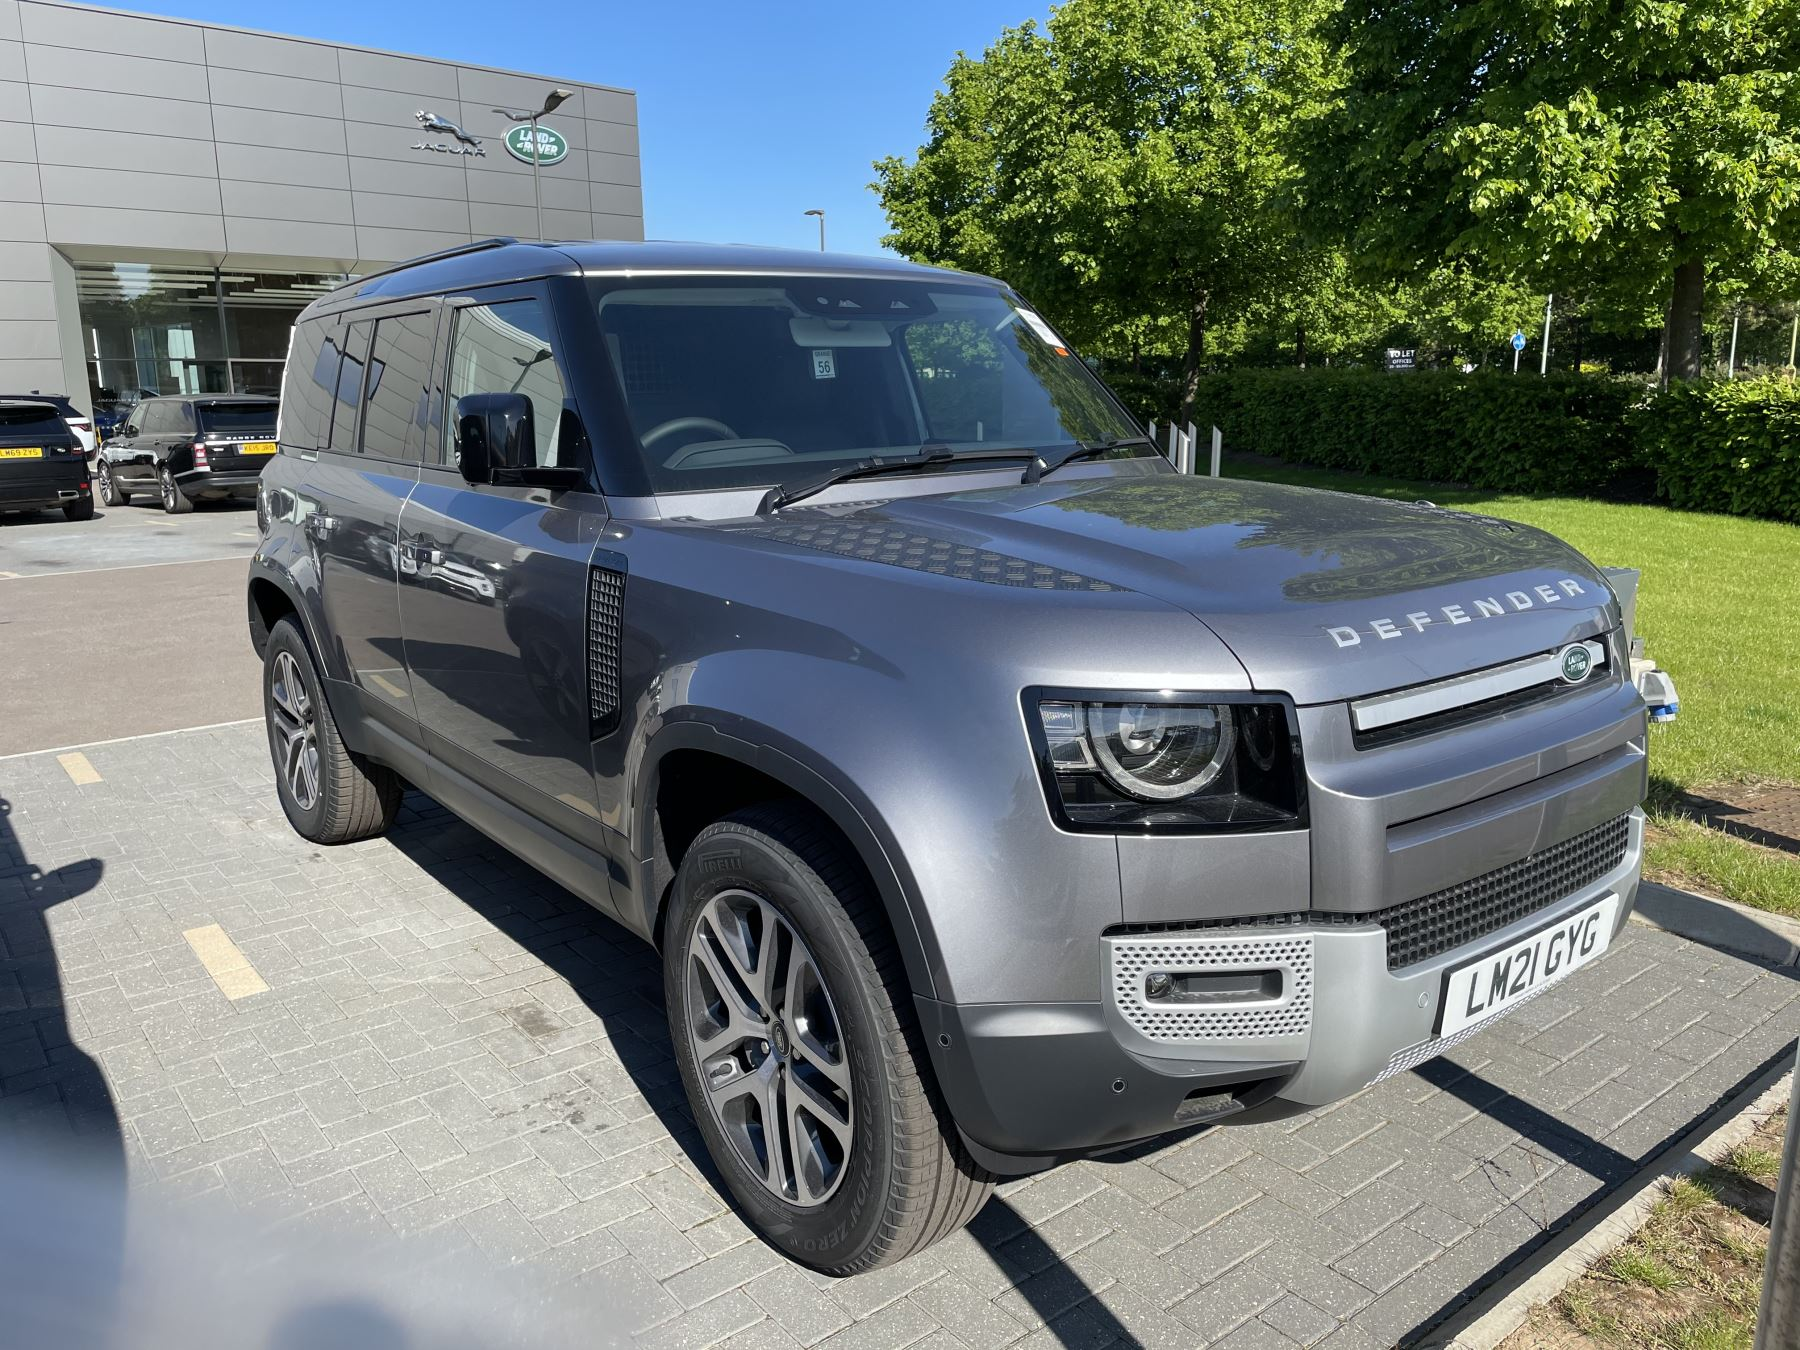 Land Rover Defender 3.0 D300 HARD TOP HSE 110 5dr Auto Diesel Automatic 4x4